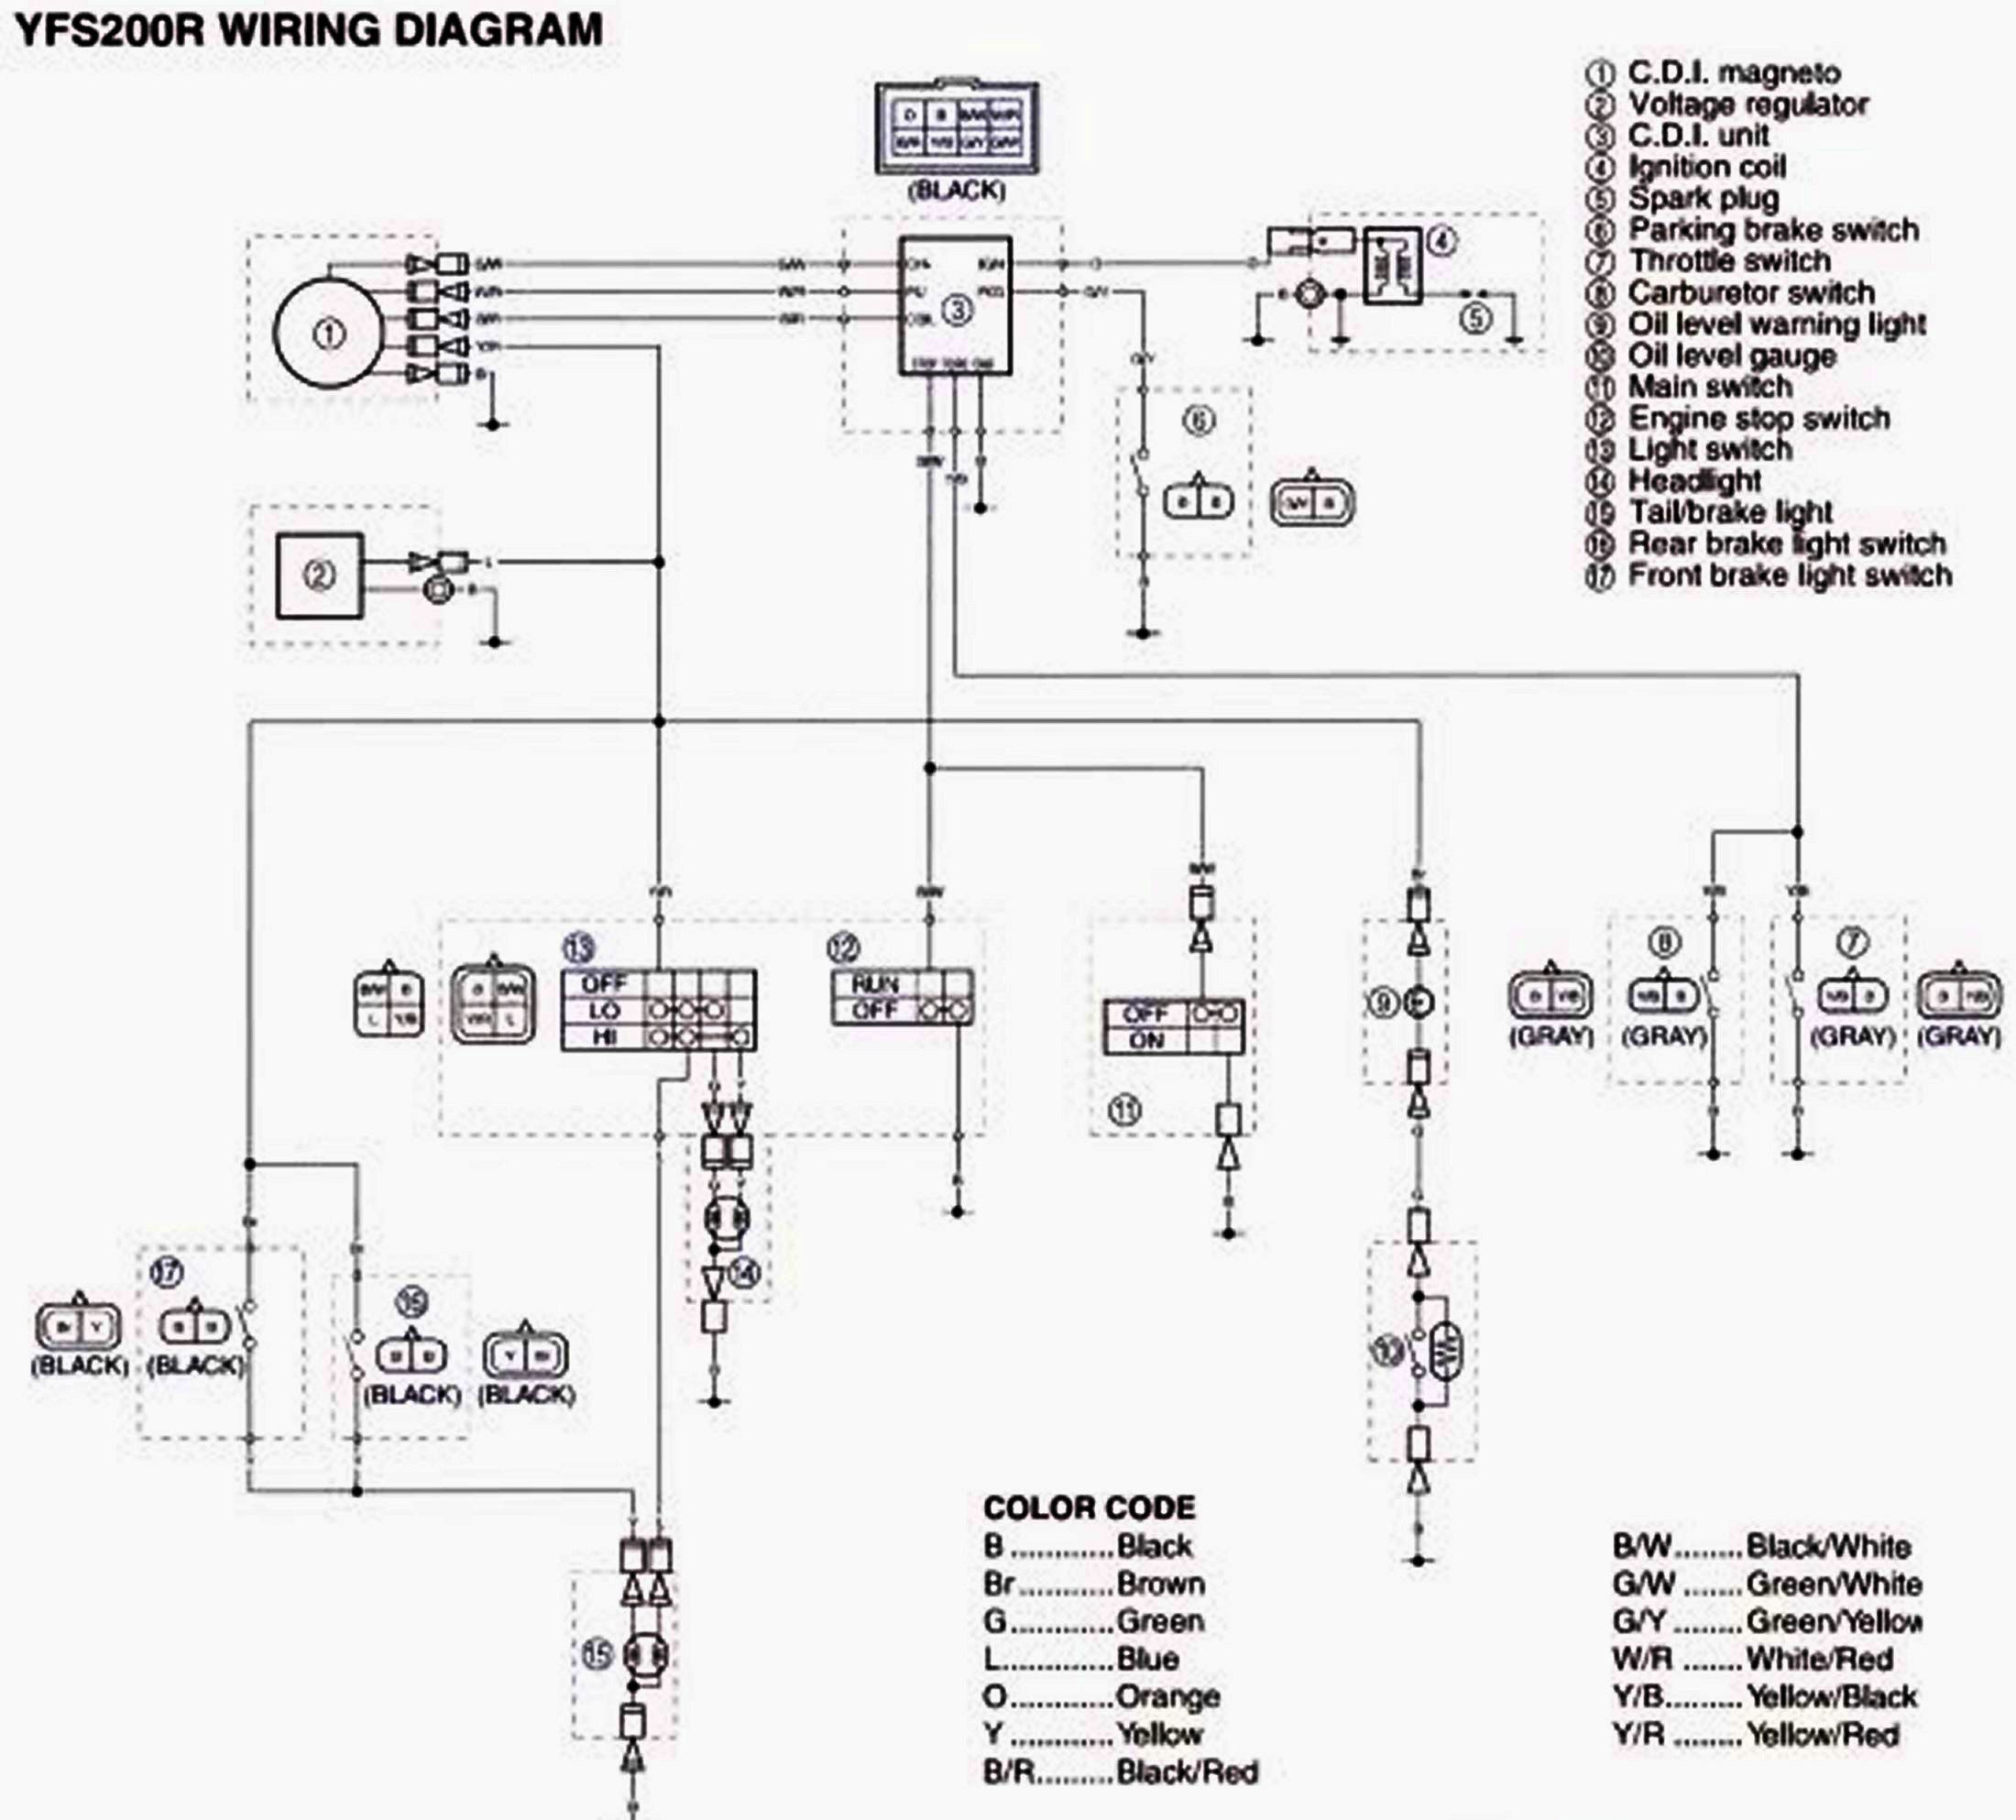 Yamaha Blaster Electrical Diagram, Yamaha, Free Engine